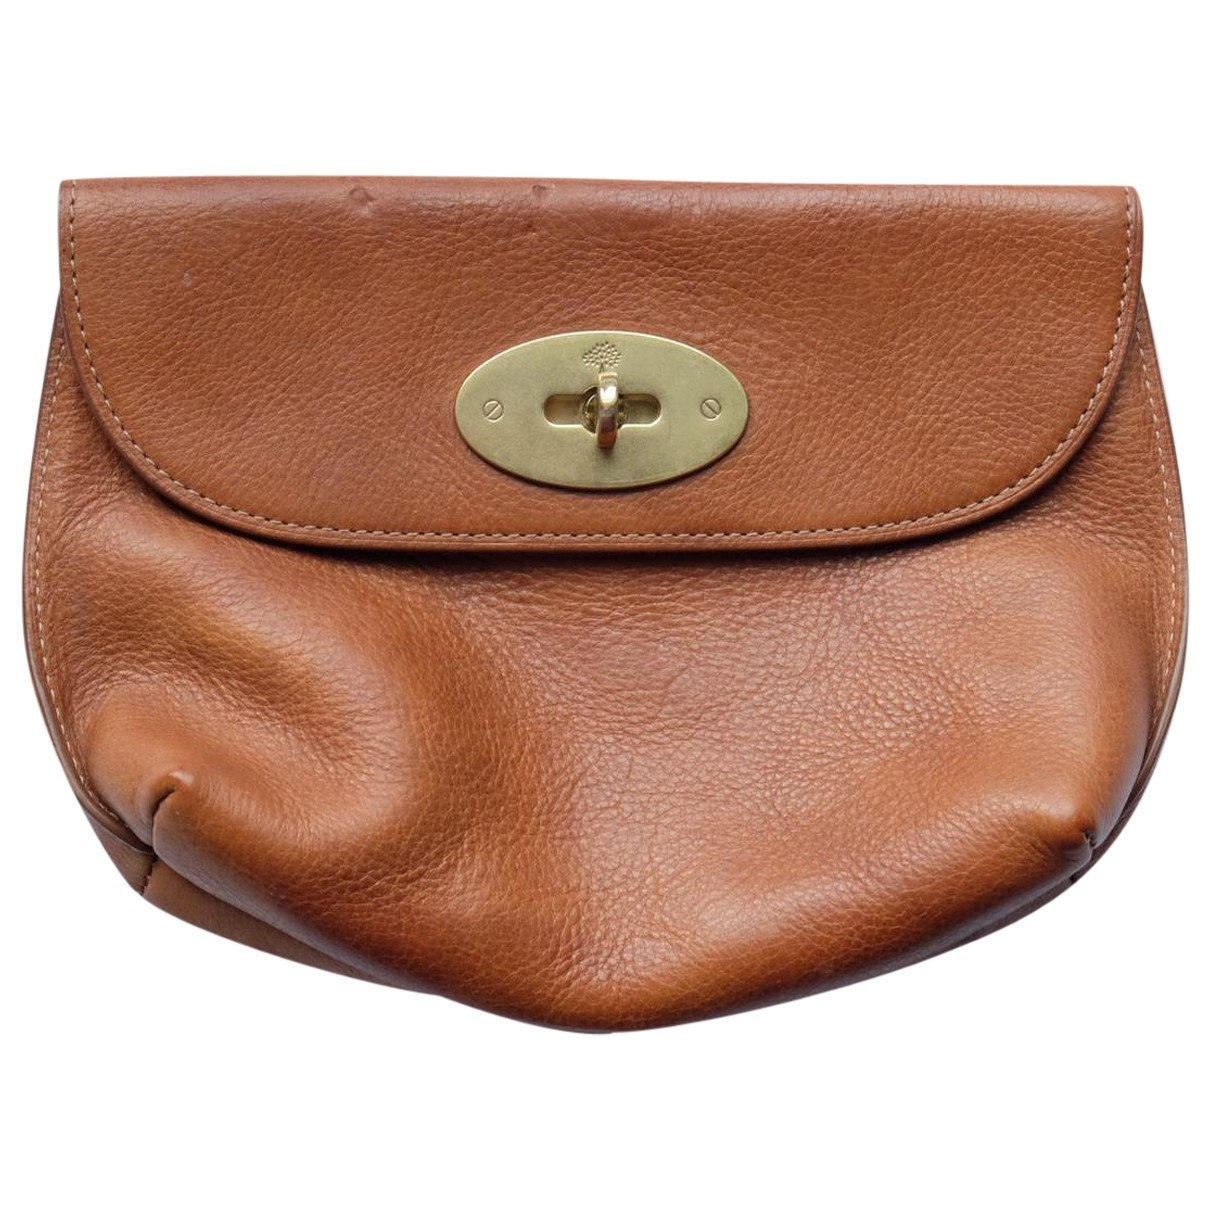 Mulberry \N Brown Leather Clutch bag for Women \N